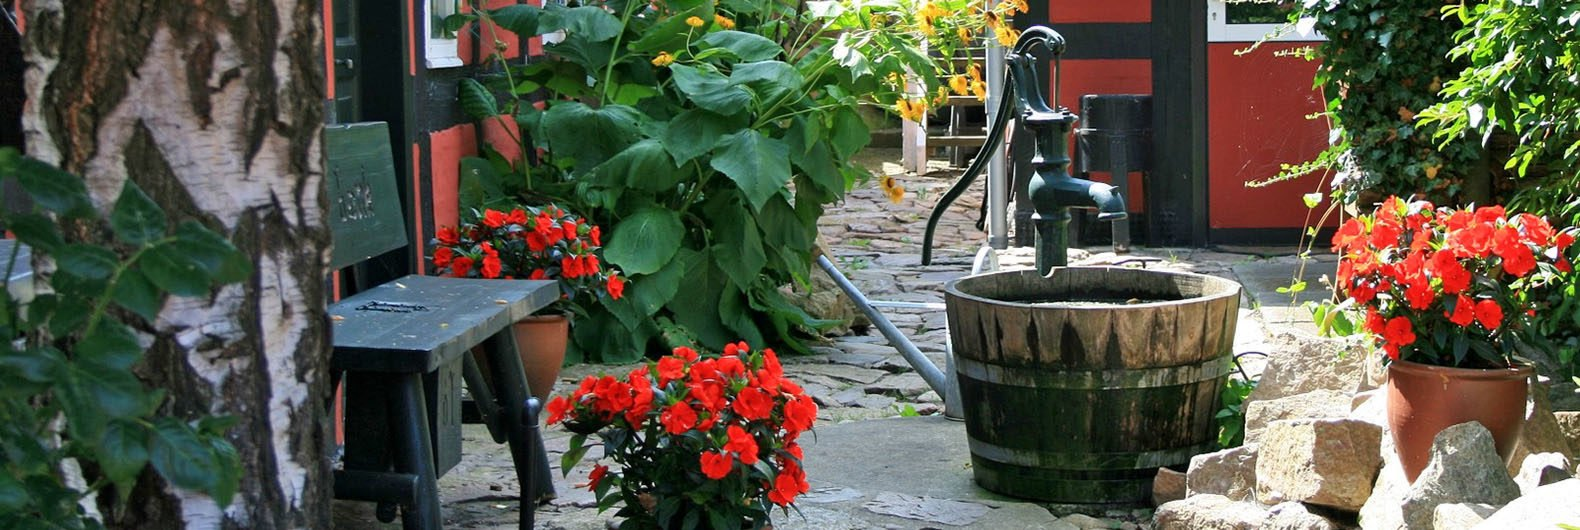 3 Ways To Capture Water For Your Backyard Garden (that Wonu0027t Break The Bank)